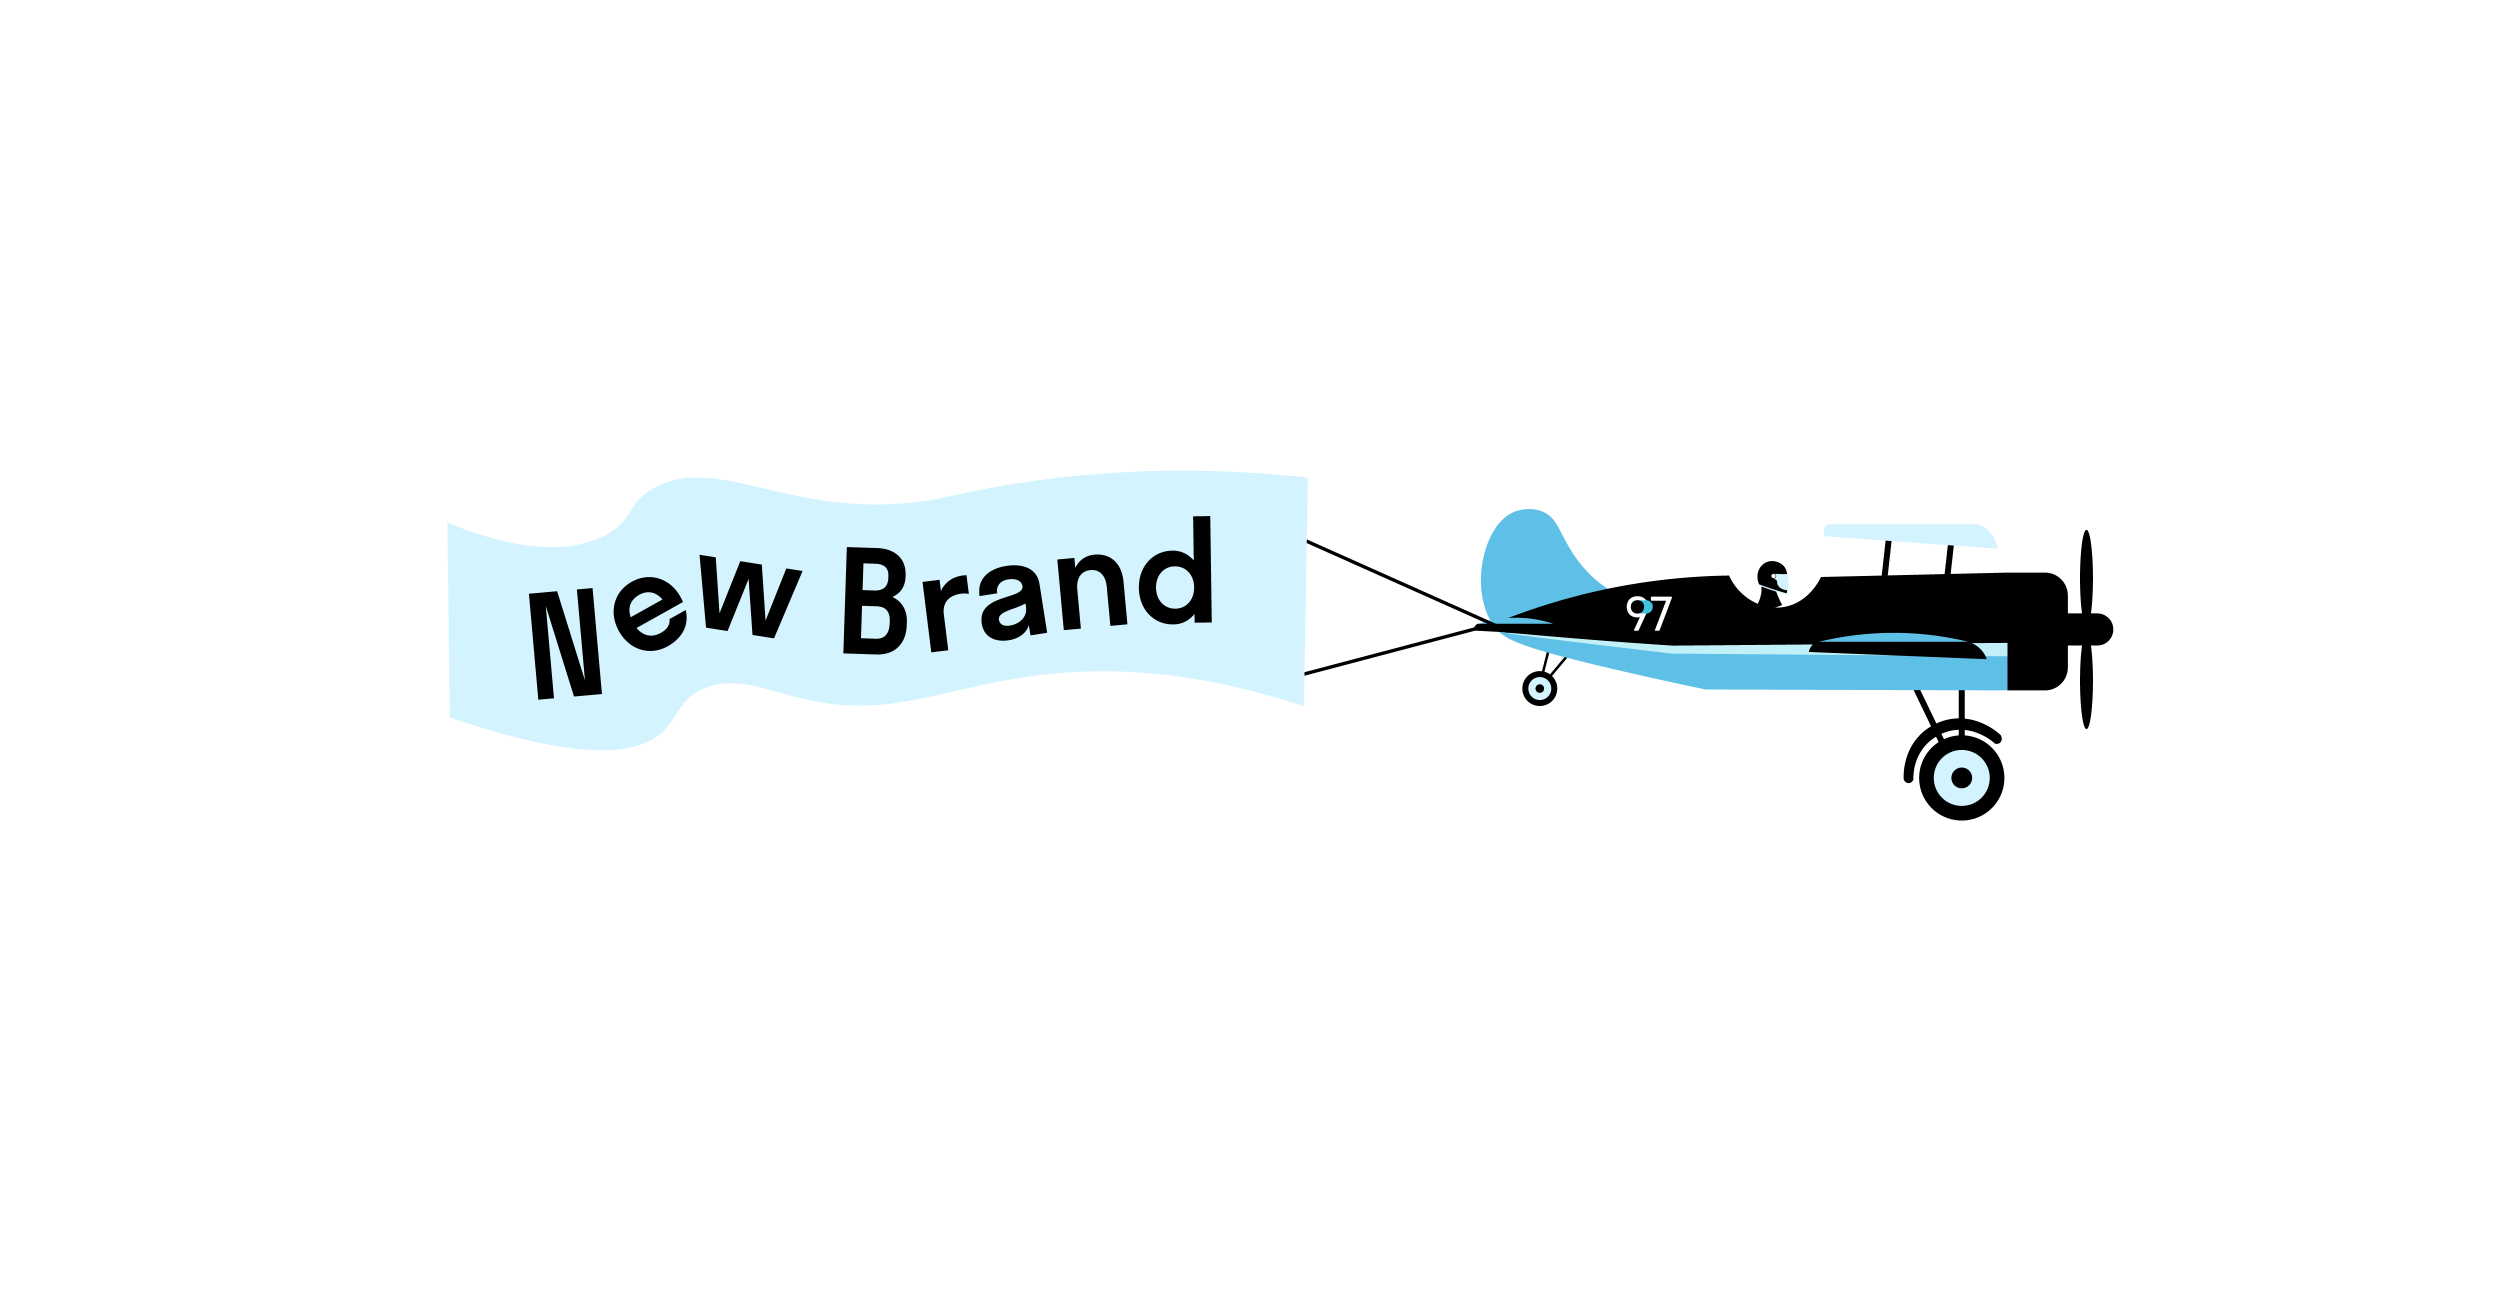 5 Reasons Why You Should Consider Rebranding | 97 Switch